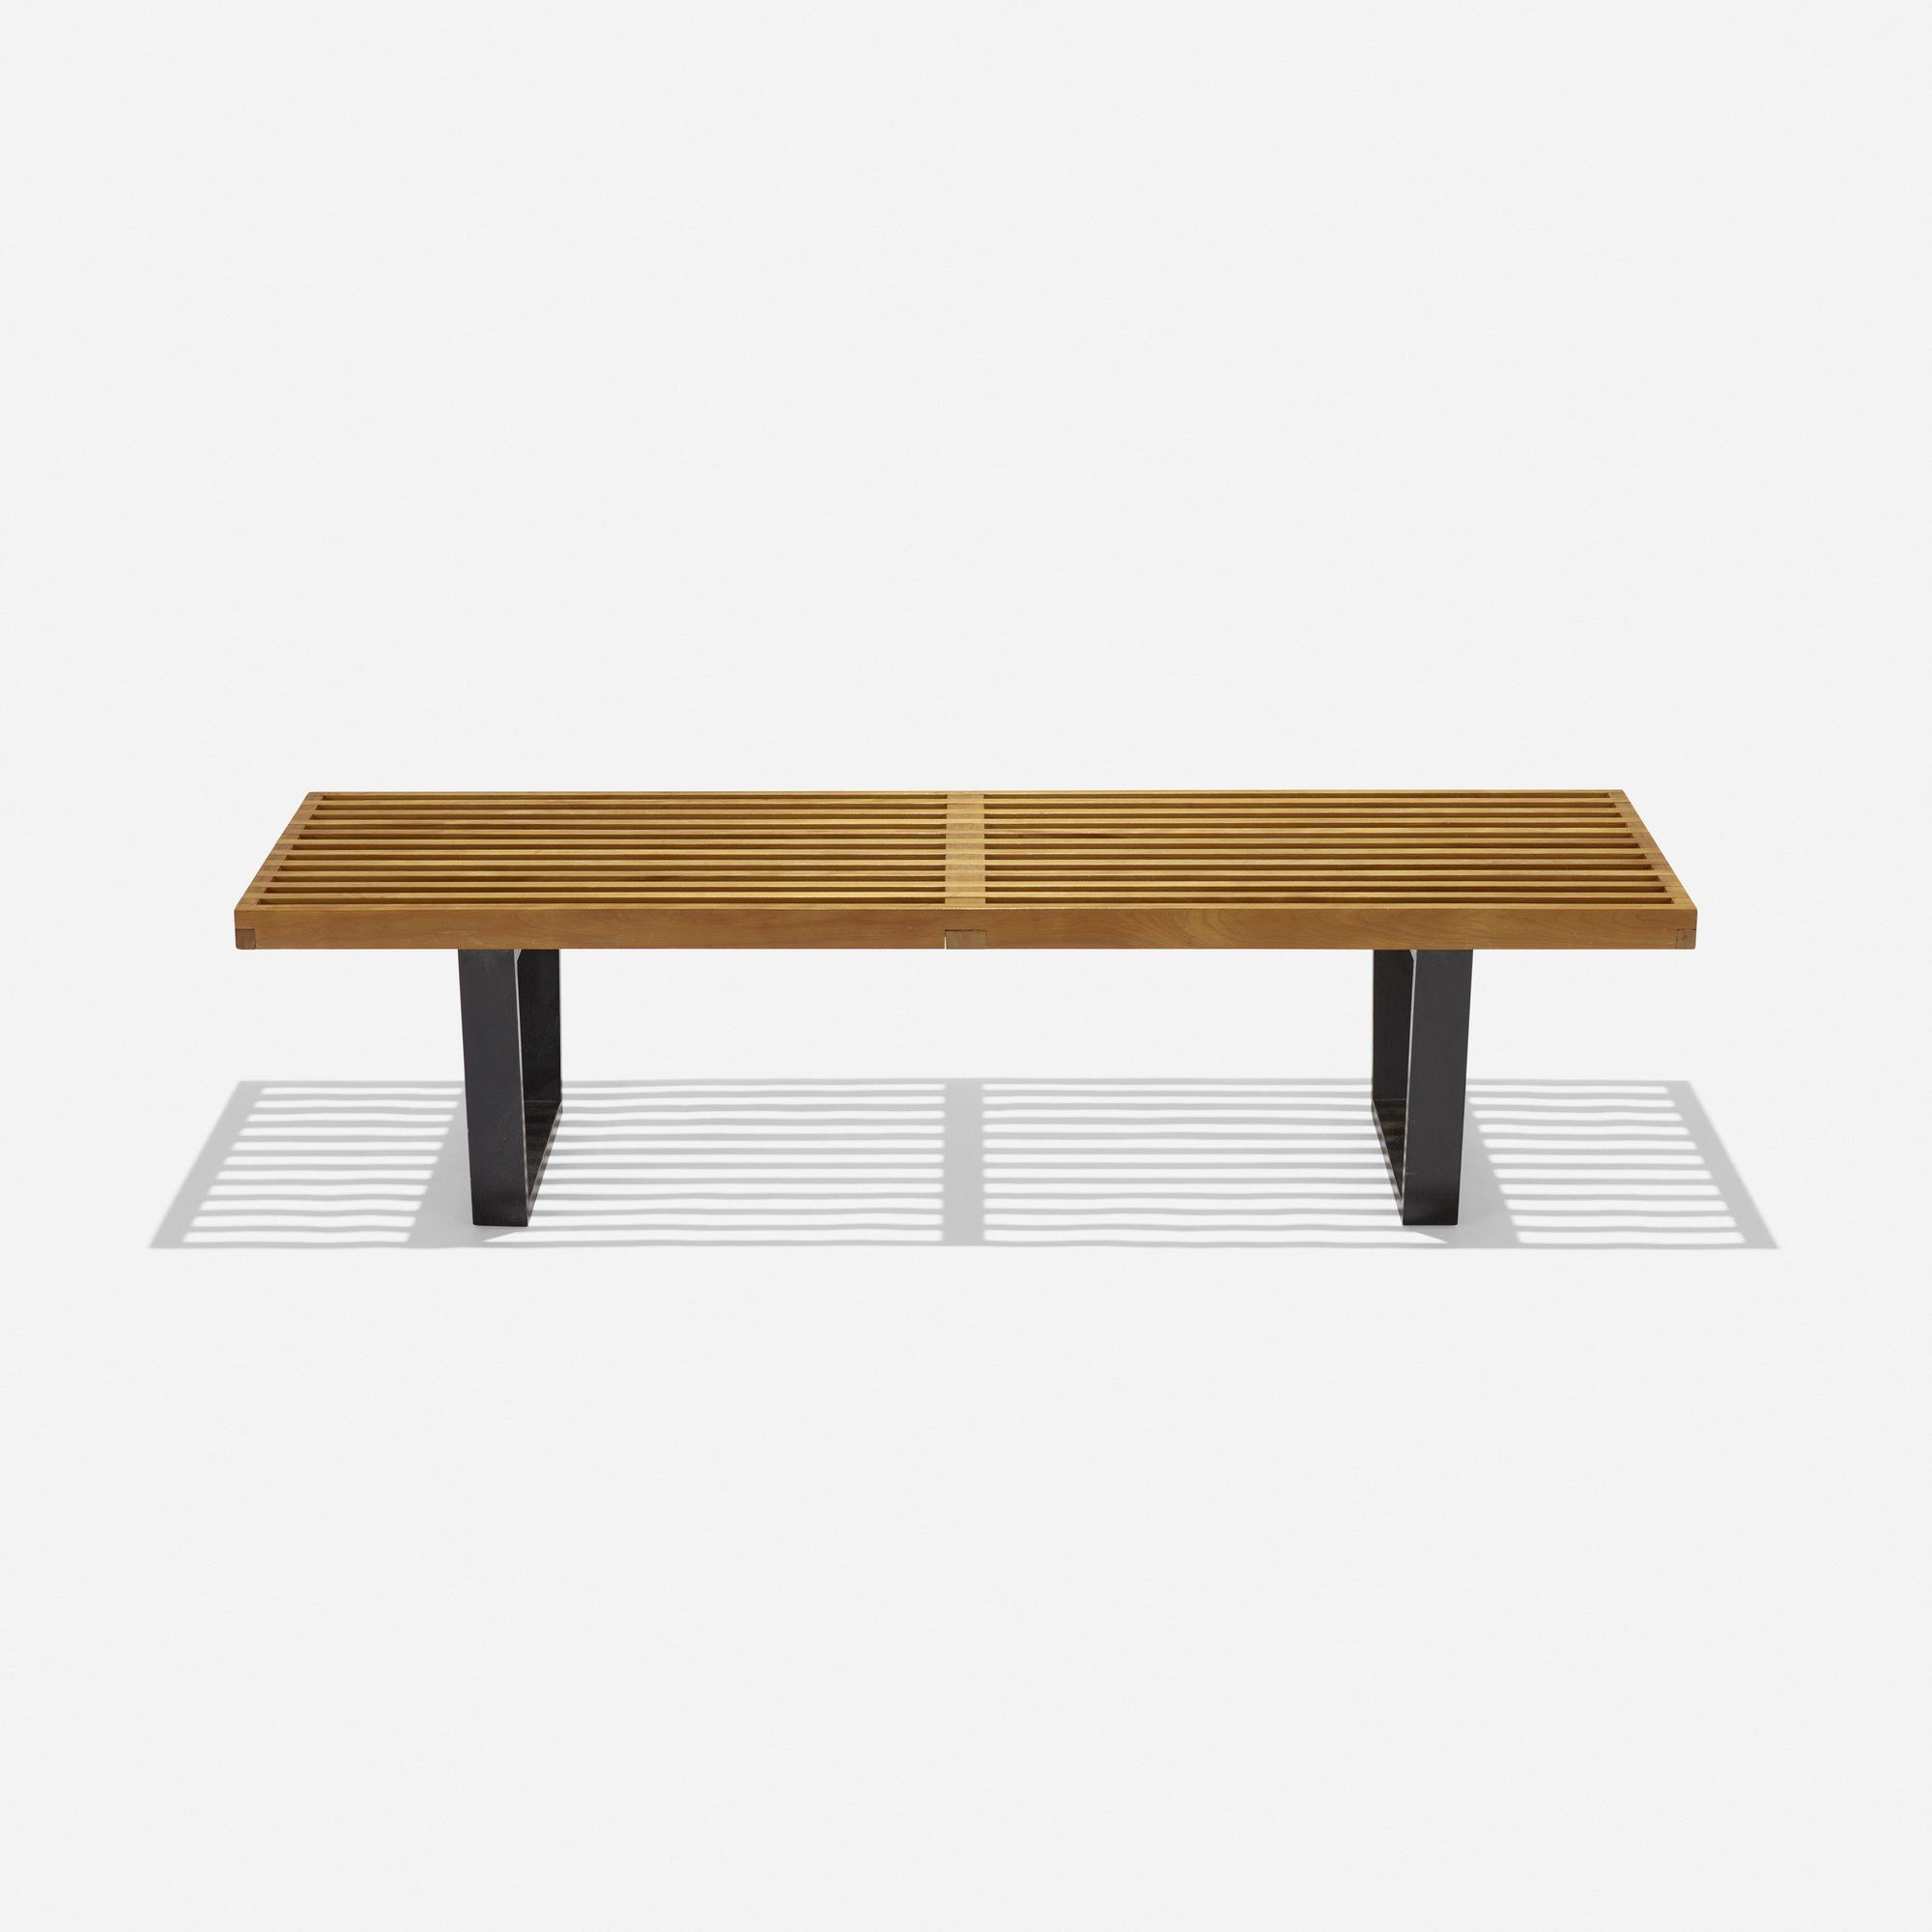 173 George Nelson & Associates slat bench model 4690